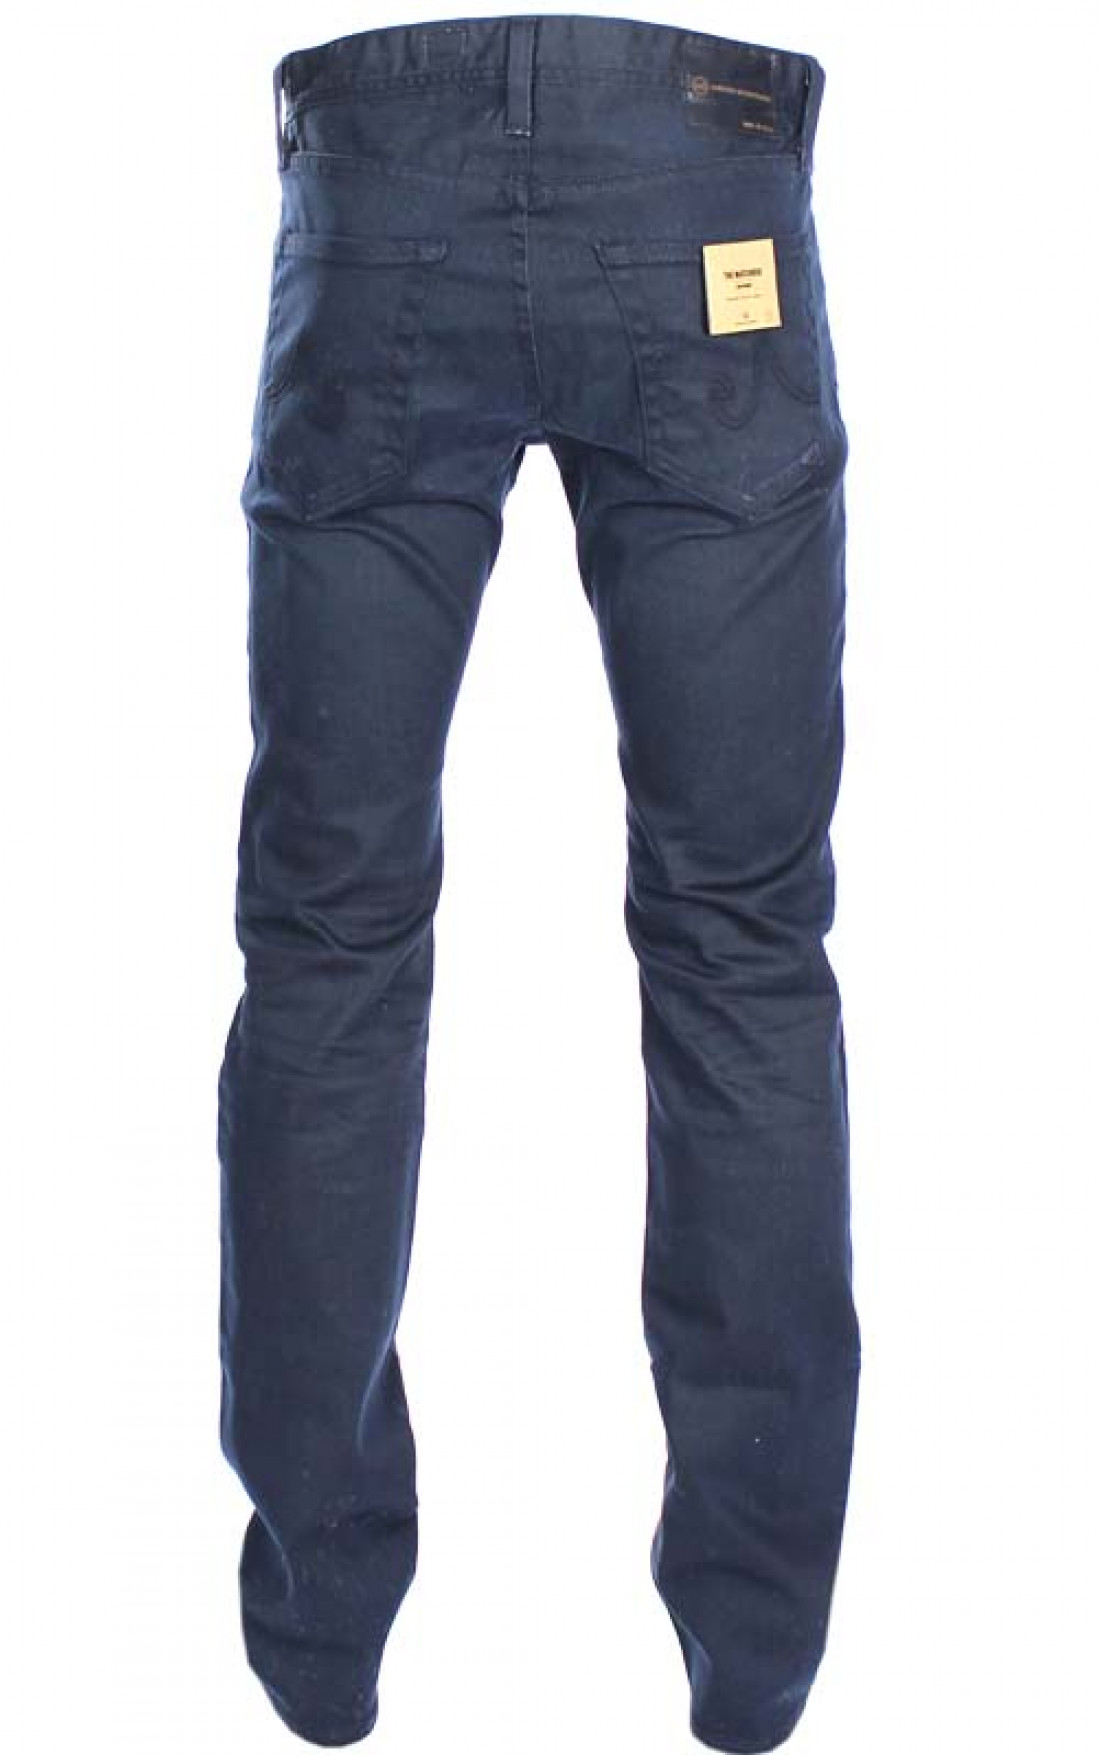 Adriano-Goldschmied-Mens-Matchbox-Navy-Jeans-Boudi-UK-Back